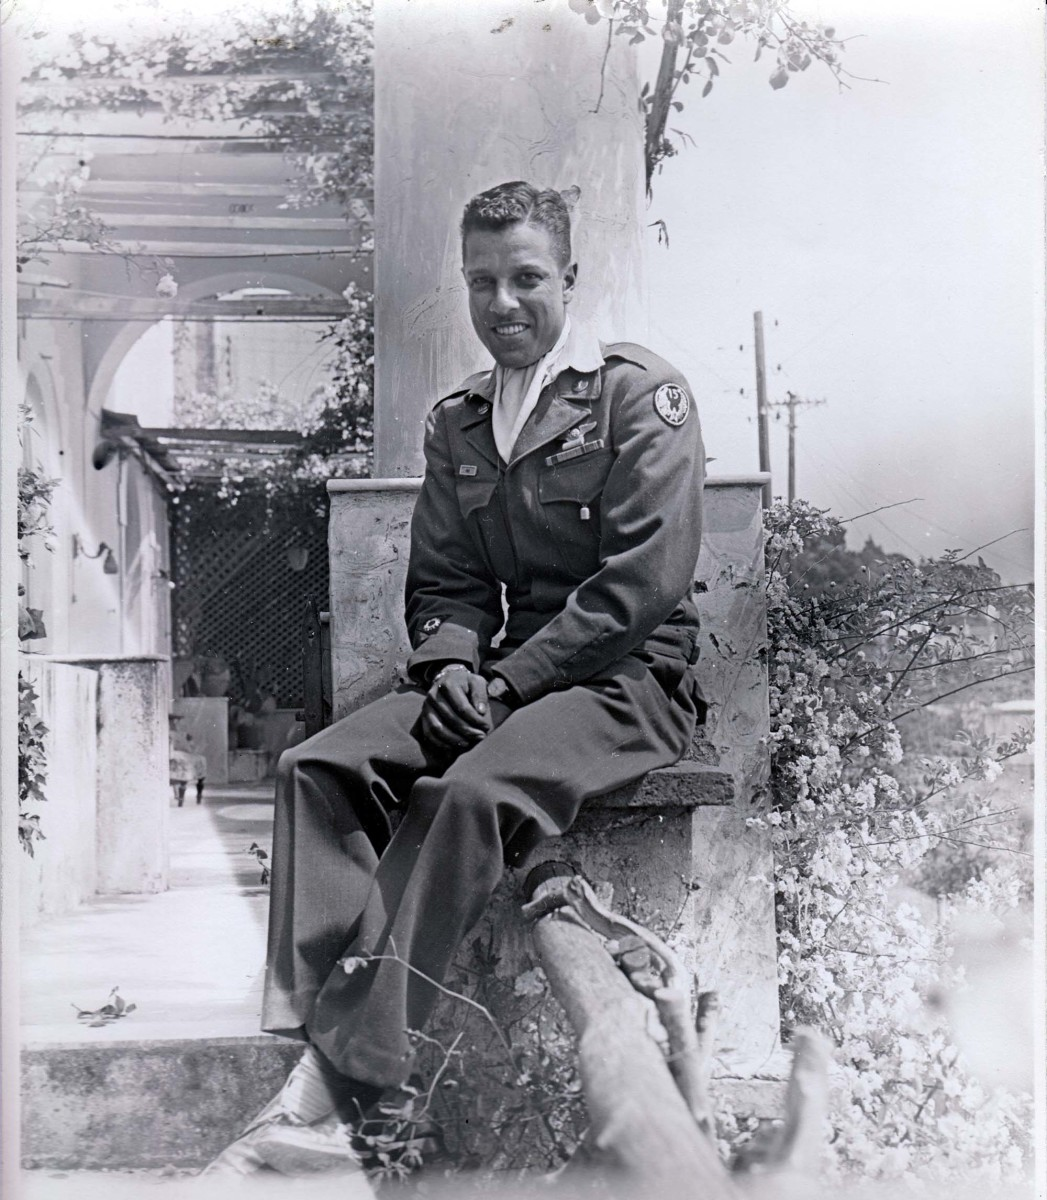 """Curtis Carr, a member of the Creek Nation who attended the Chilocco Indian Agricultural School as a youth, in a photo from his Army Air Corps days. Carr's daughter said while he credited the school with giving him skills that helped him succeed, he also described the """"very harsh environment"""" at the school. (Photo courtesy K. Tsianina Lomawaima)"""